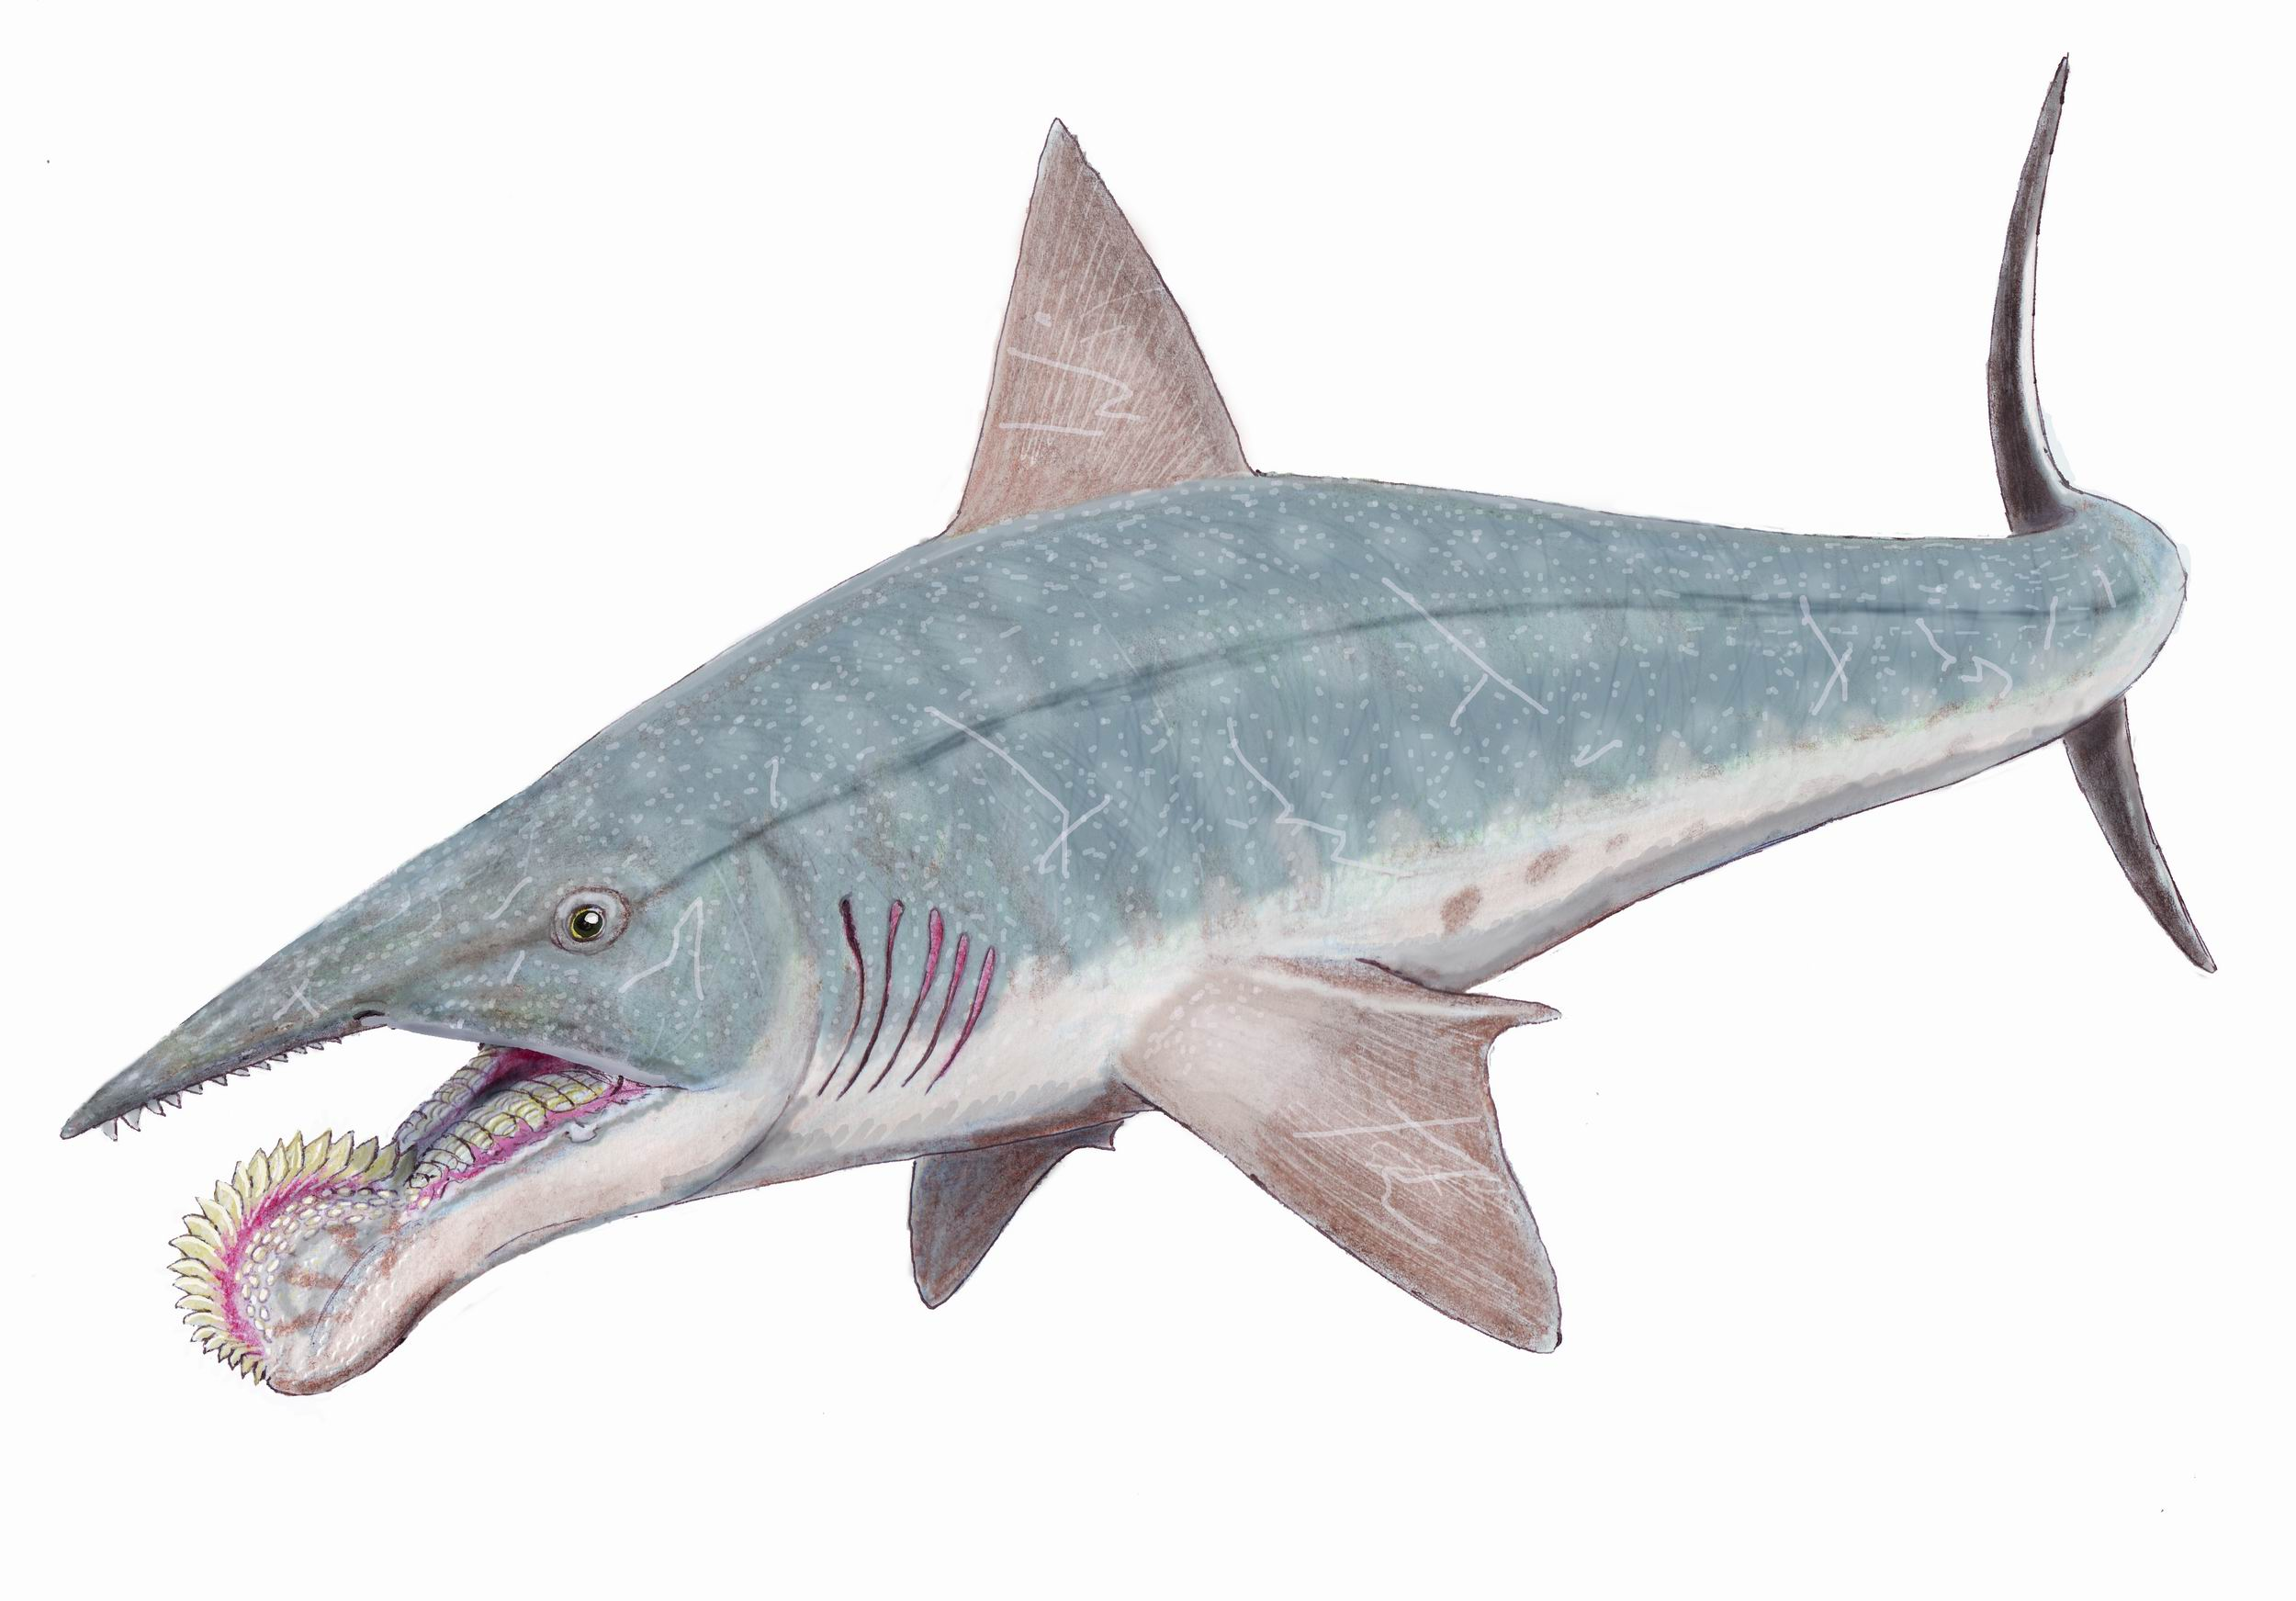 http://static3.wikia.nocookie.net/__cb20120118080431/cooldinofacts/images/1/14/Helicoprion.jpg